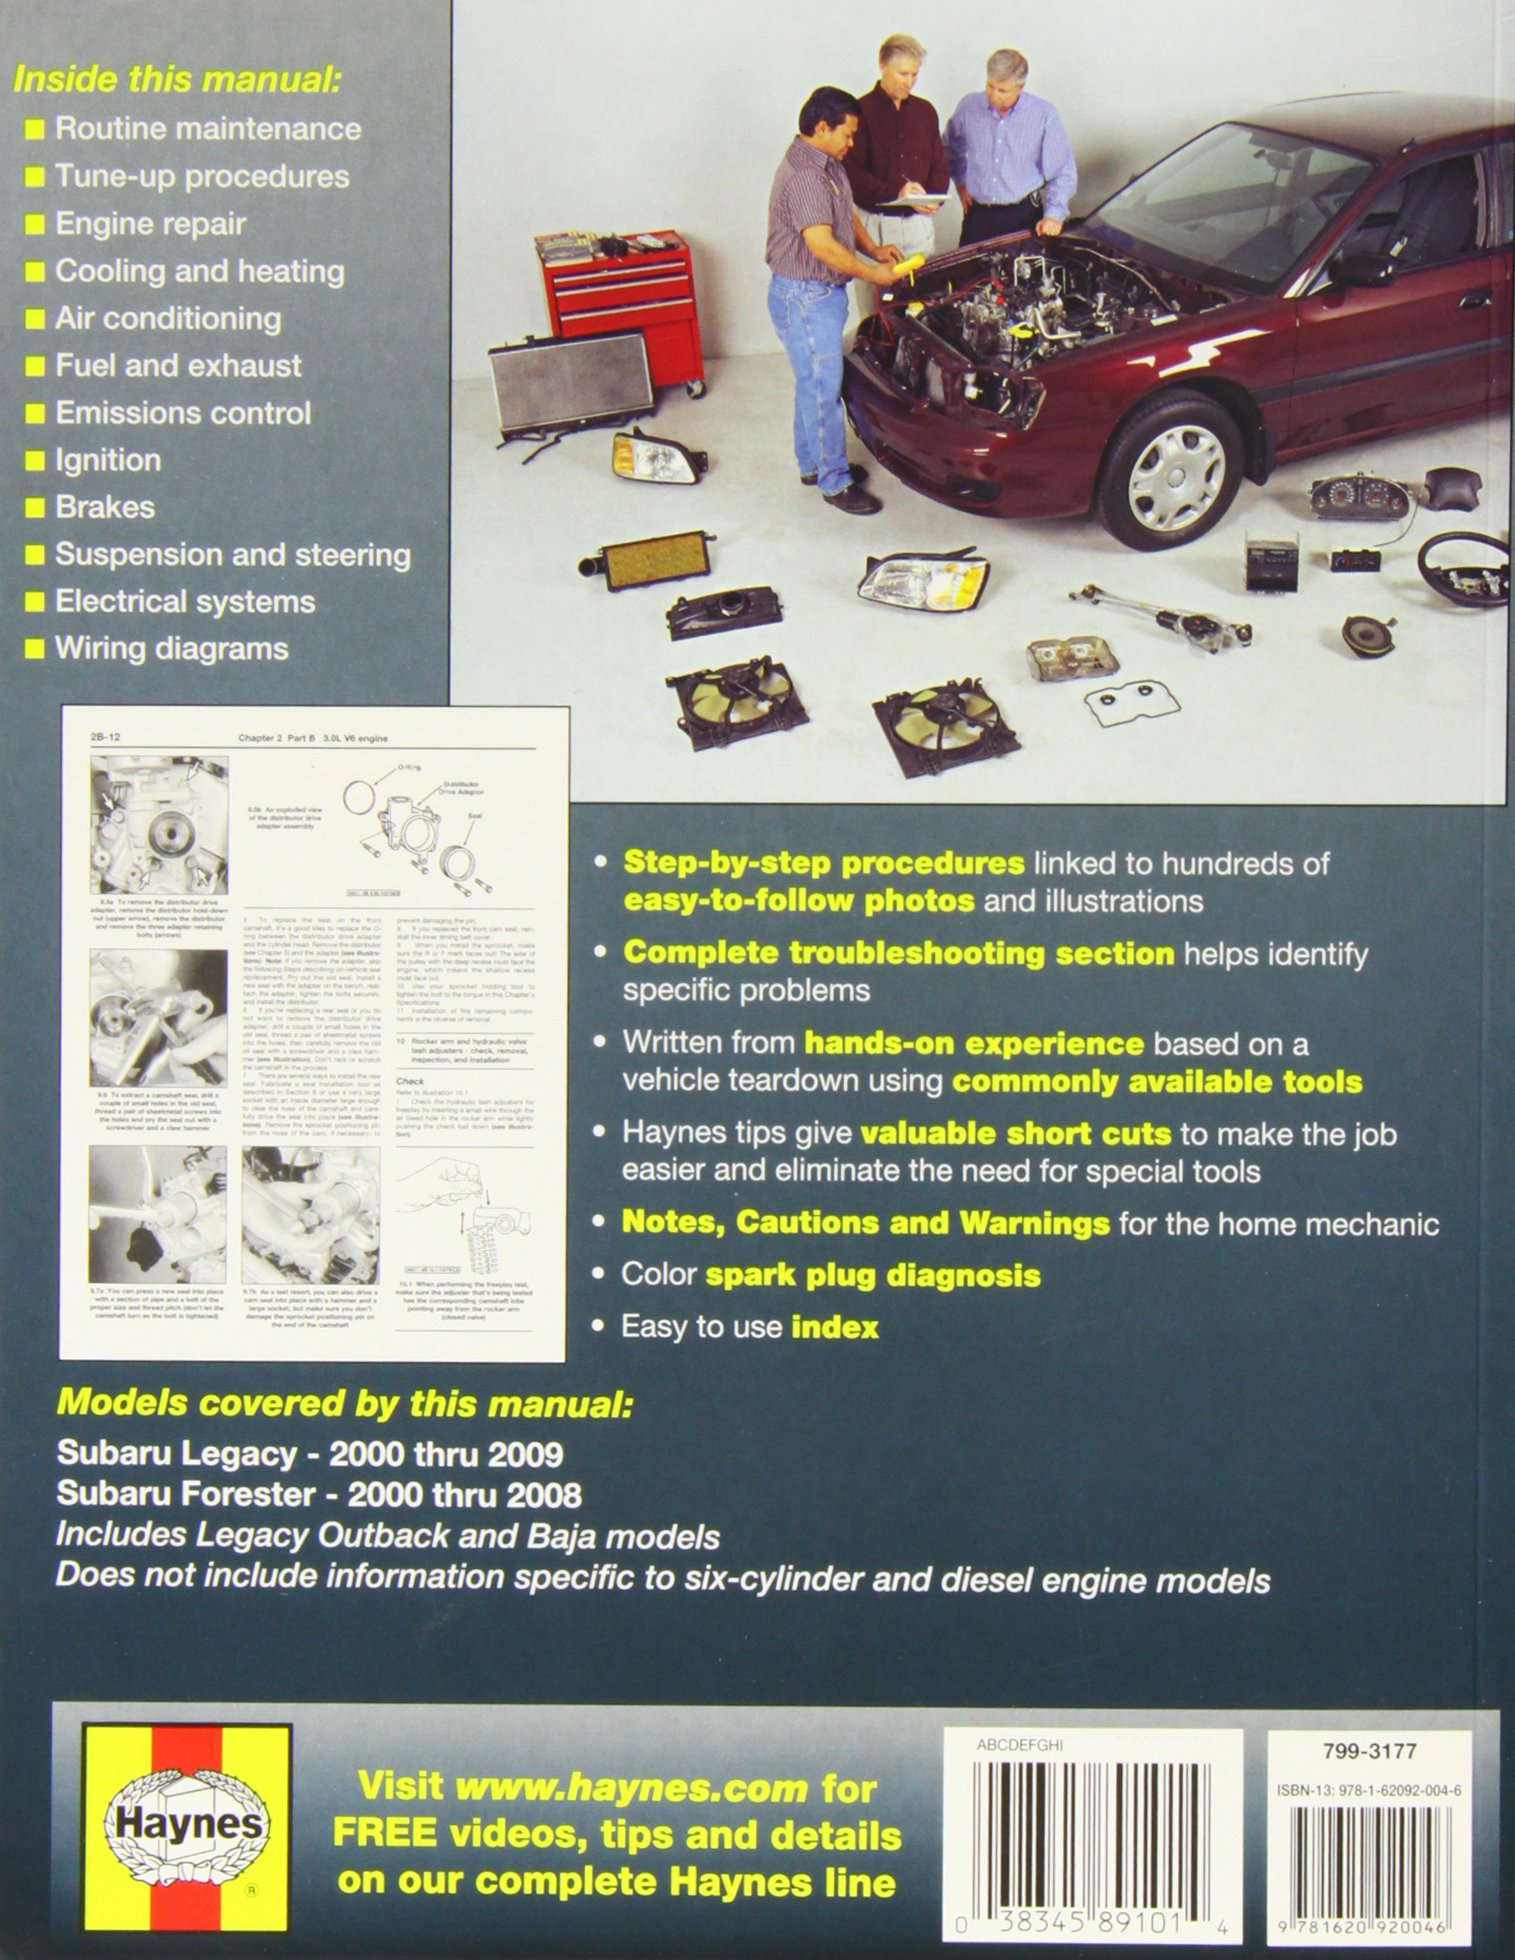 Subaru Legacy Forester 2000 09 Haynes Repair Manual Paperback 2008 Chrysler Pt Cruiser Engine Diagram Publishing 0038345891014 Books